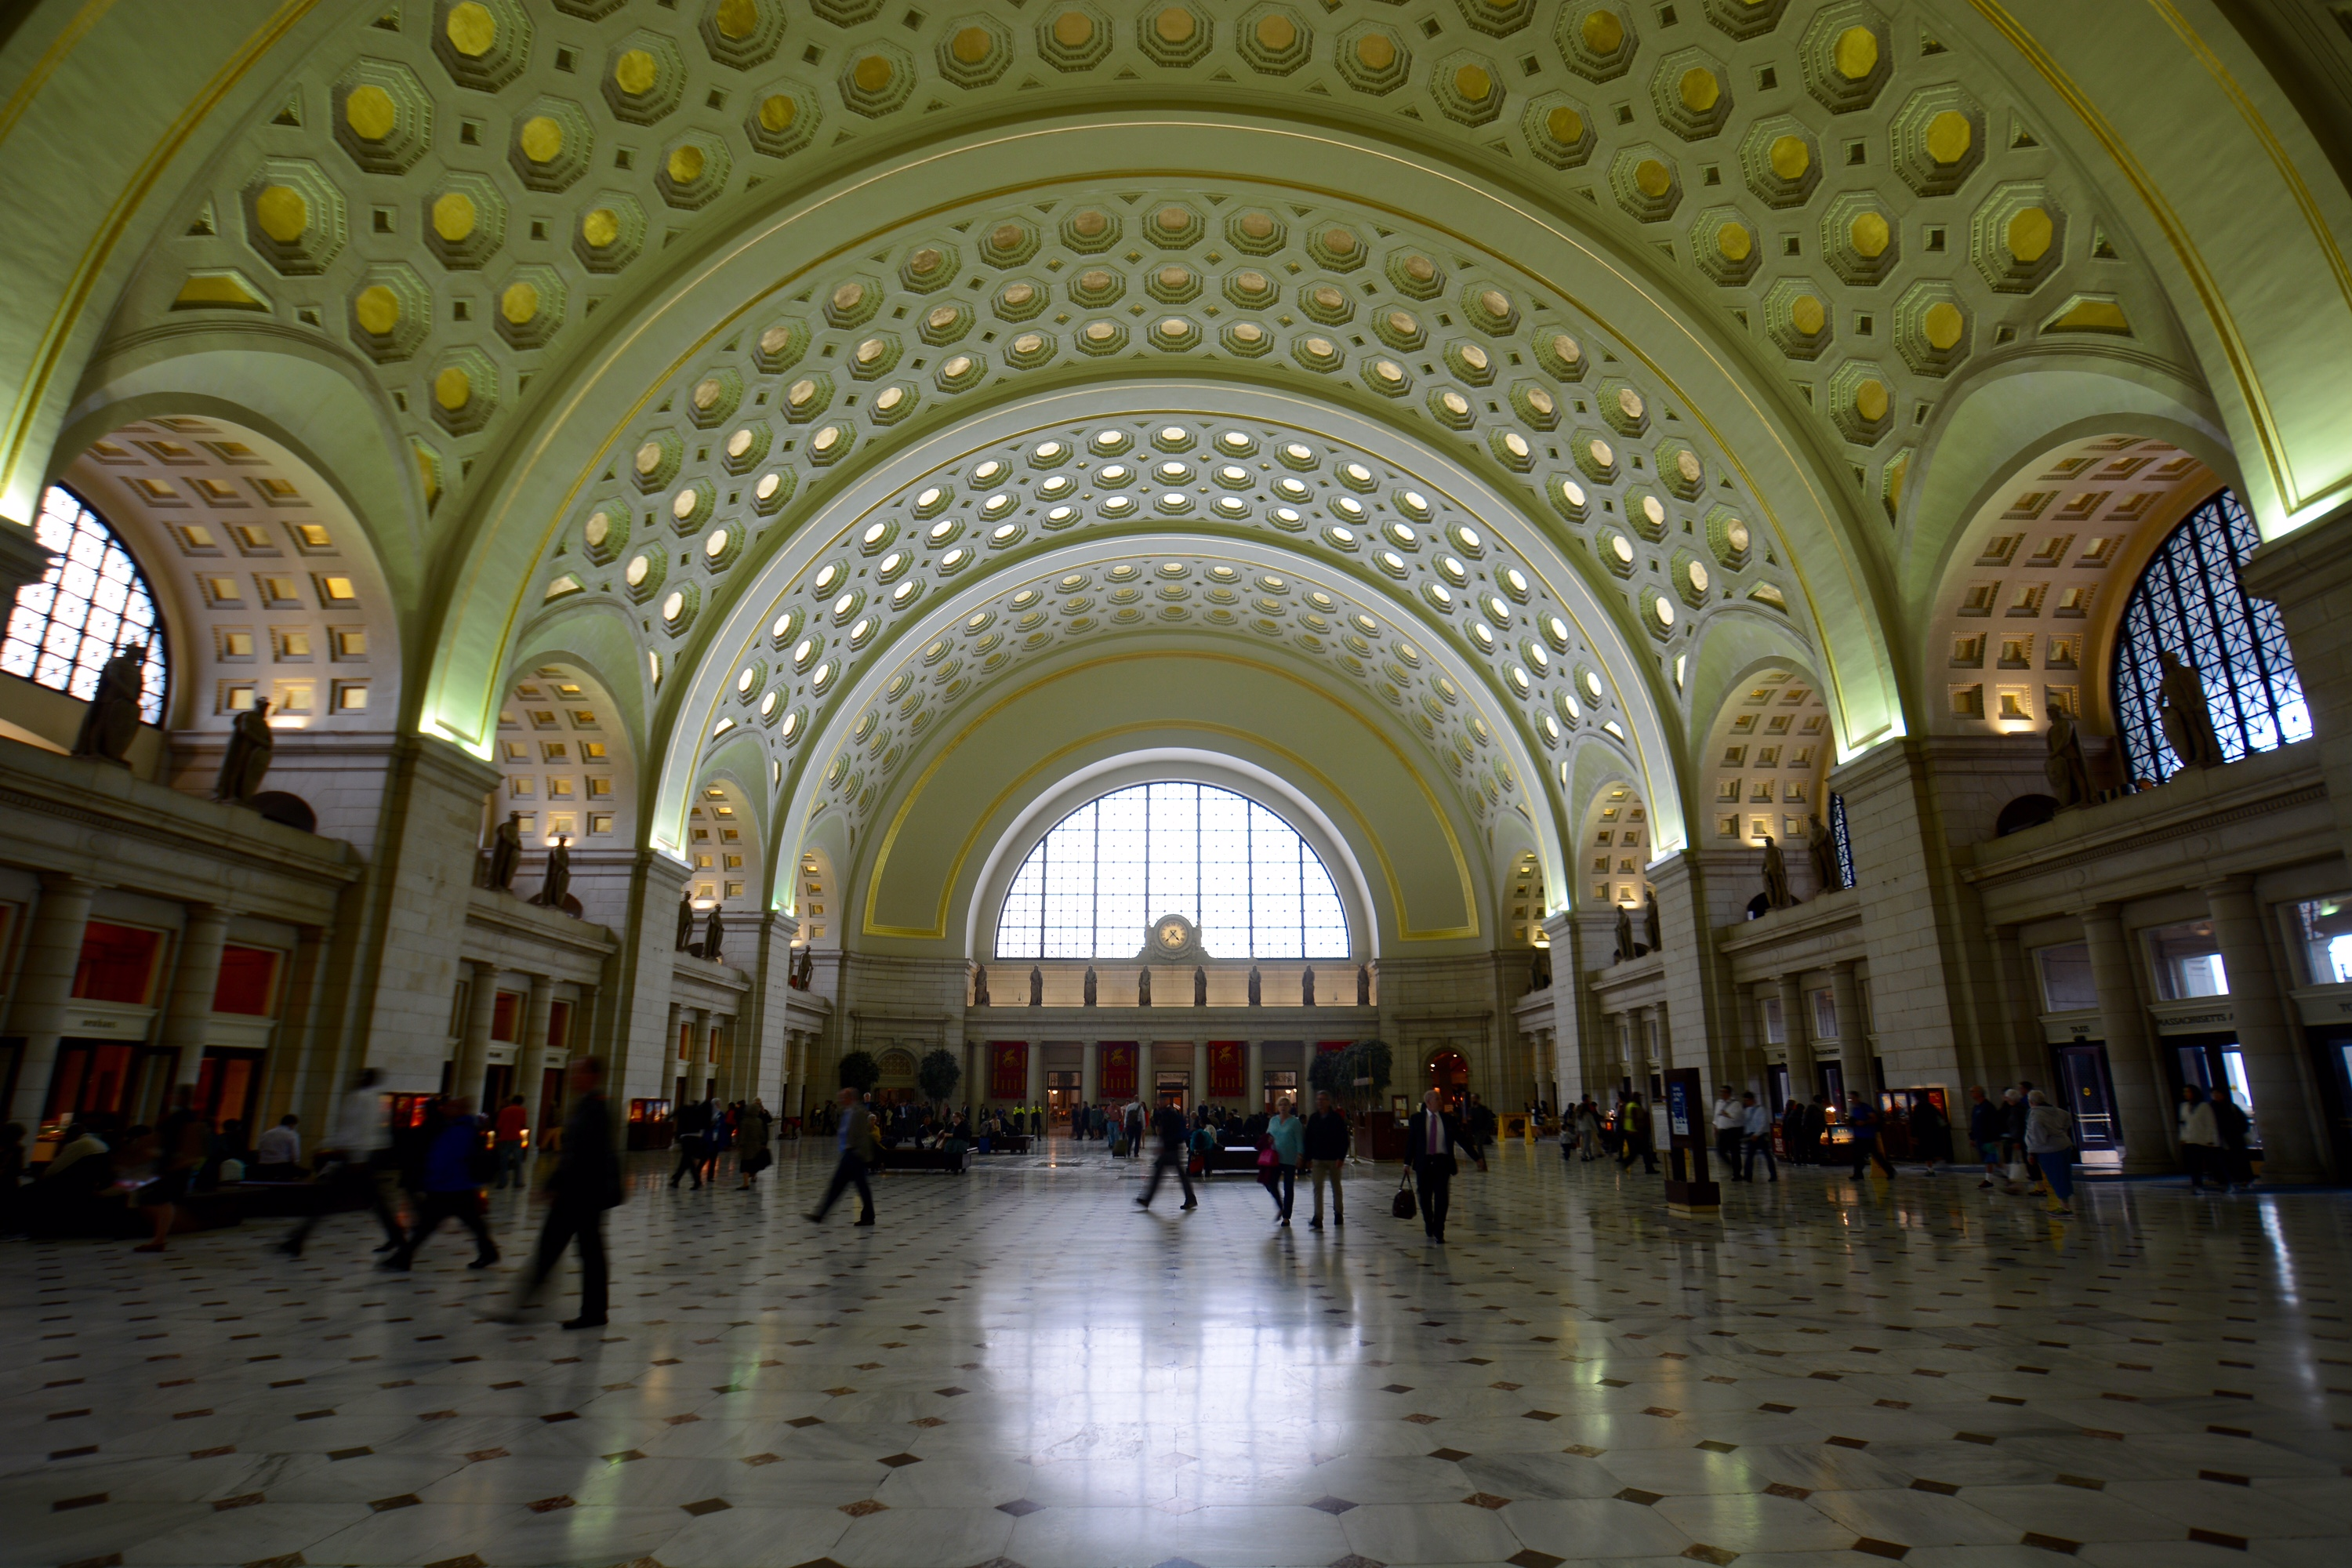 Photos: Renovations completed at Union Station